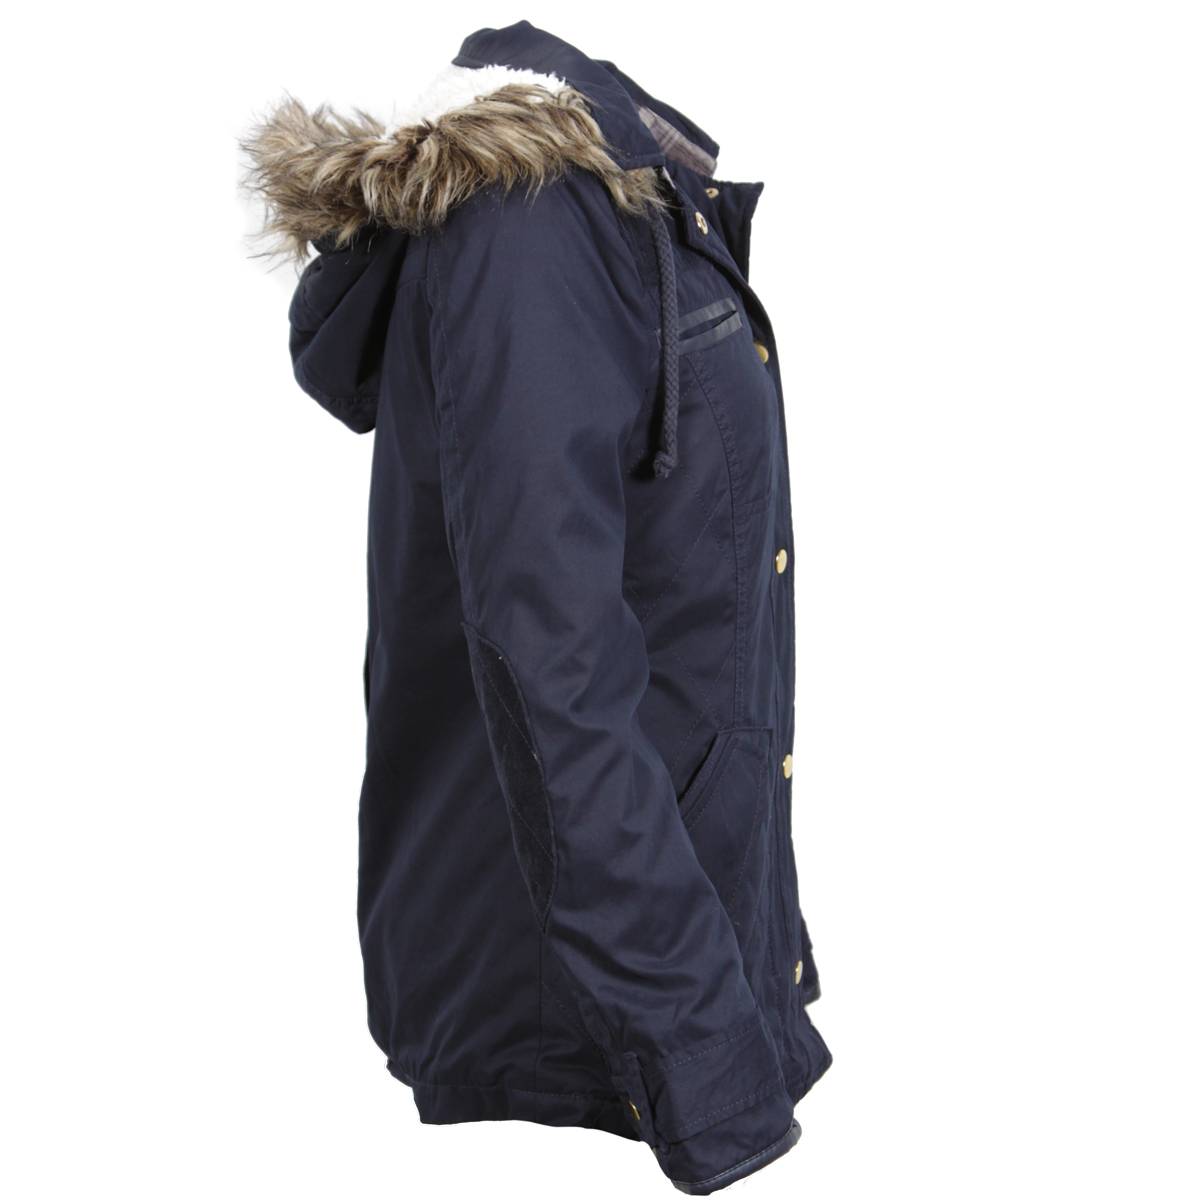 Shop Women's Snowboard Jackets and other winter outerwear including the Jet Set, Hazel, Prowess, [ak] Gore-Tex Embark 2L, Gore-Tex Rubix, Eastfall, Mossy Maze, Chuteout Anorak, and Runestone Jackets from Burton.